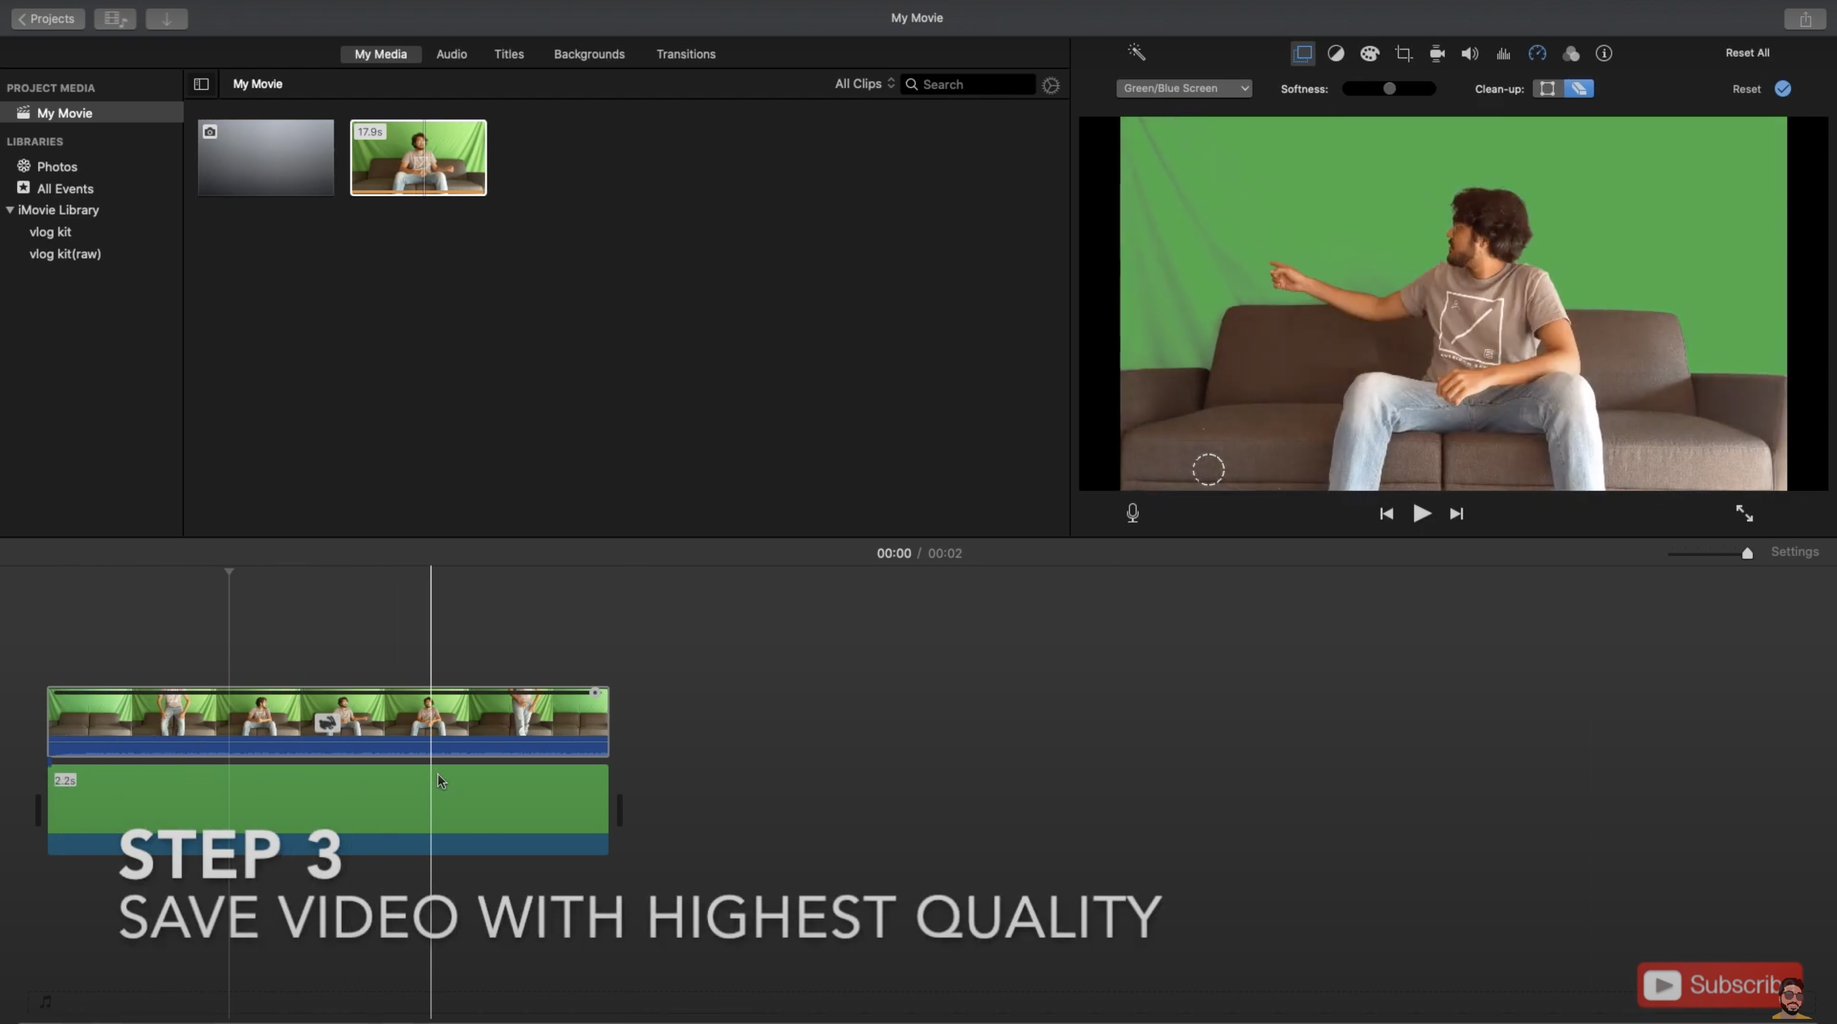 Export Video With Highest Quality